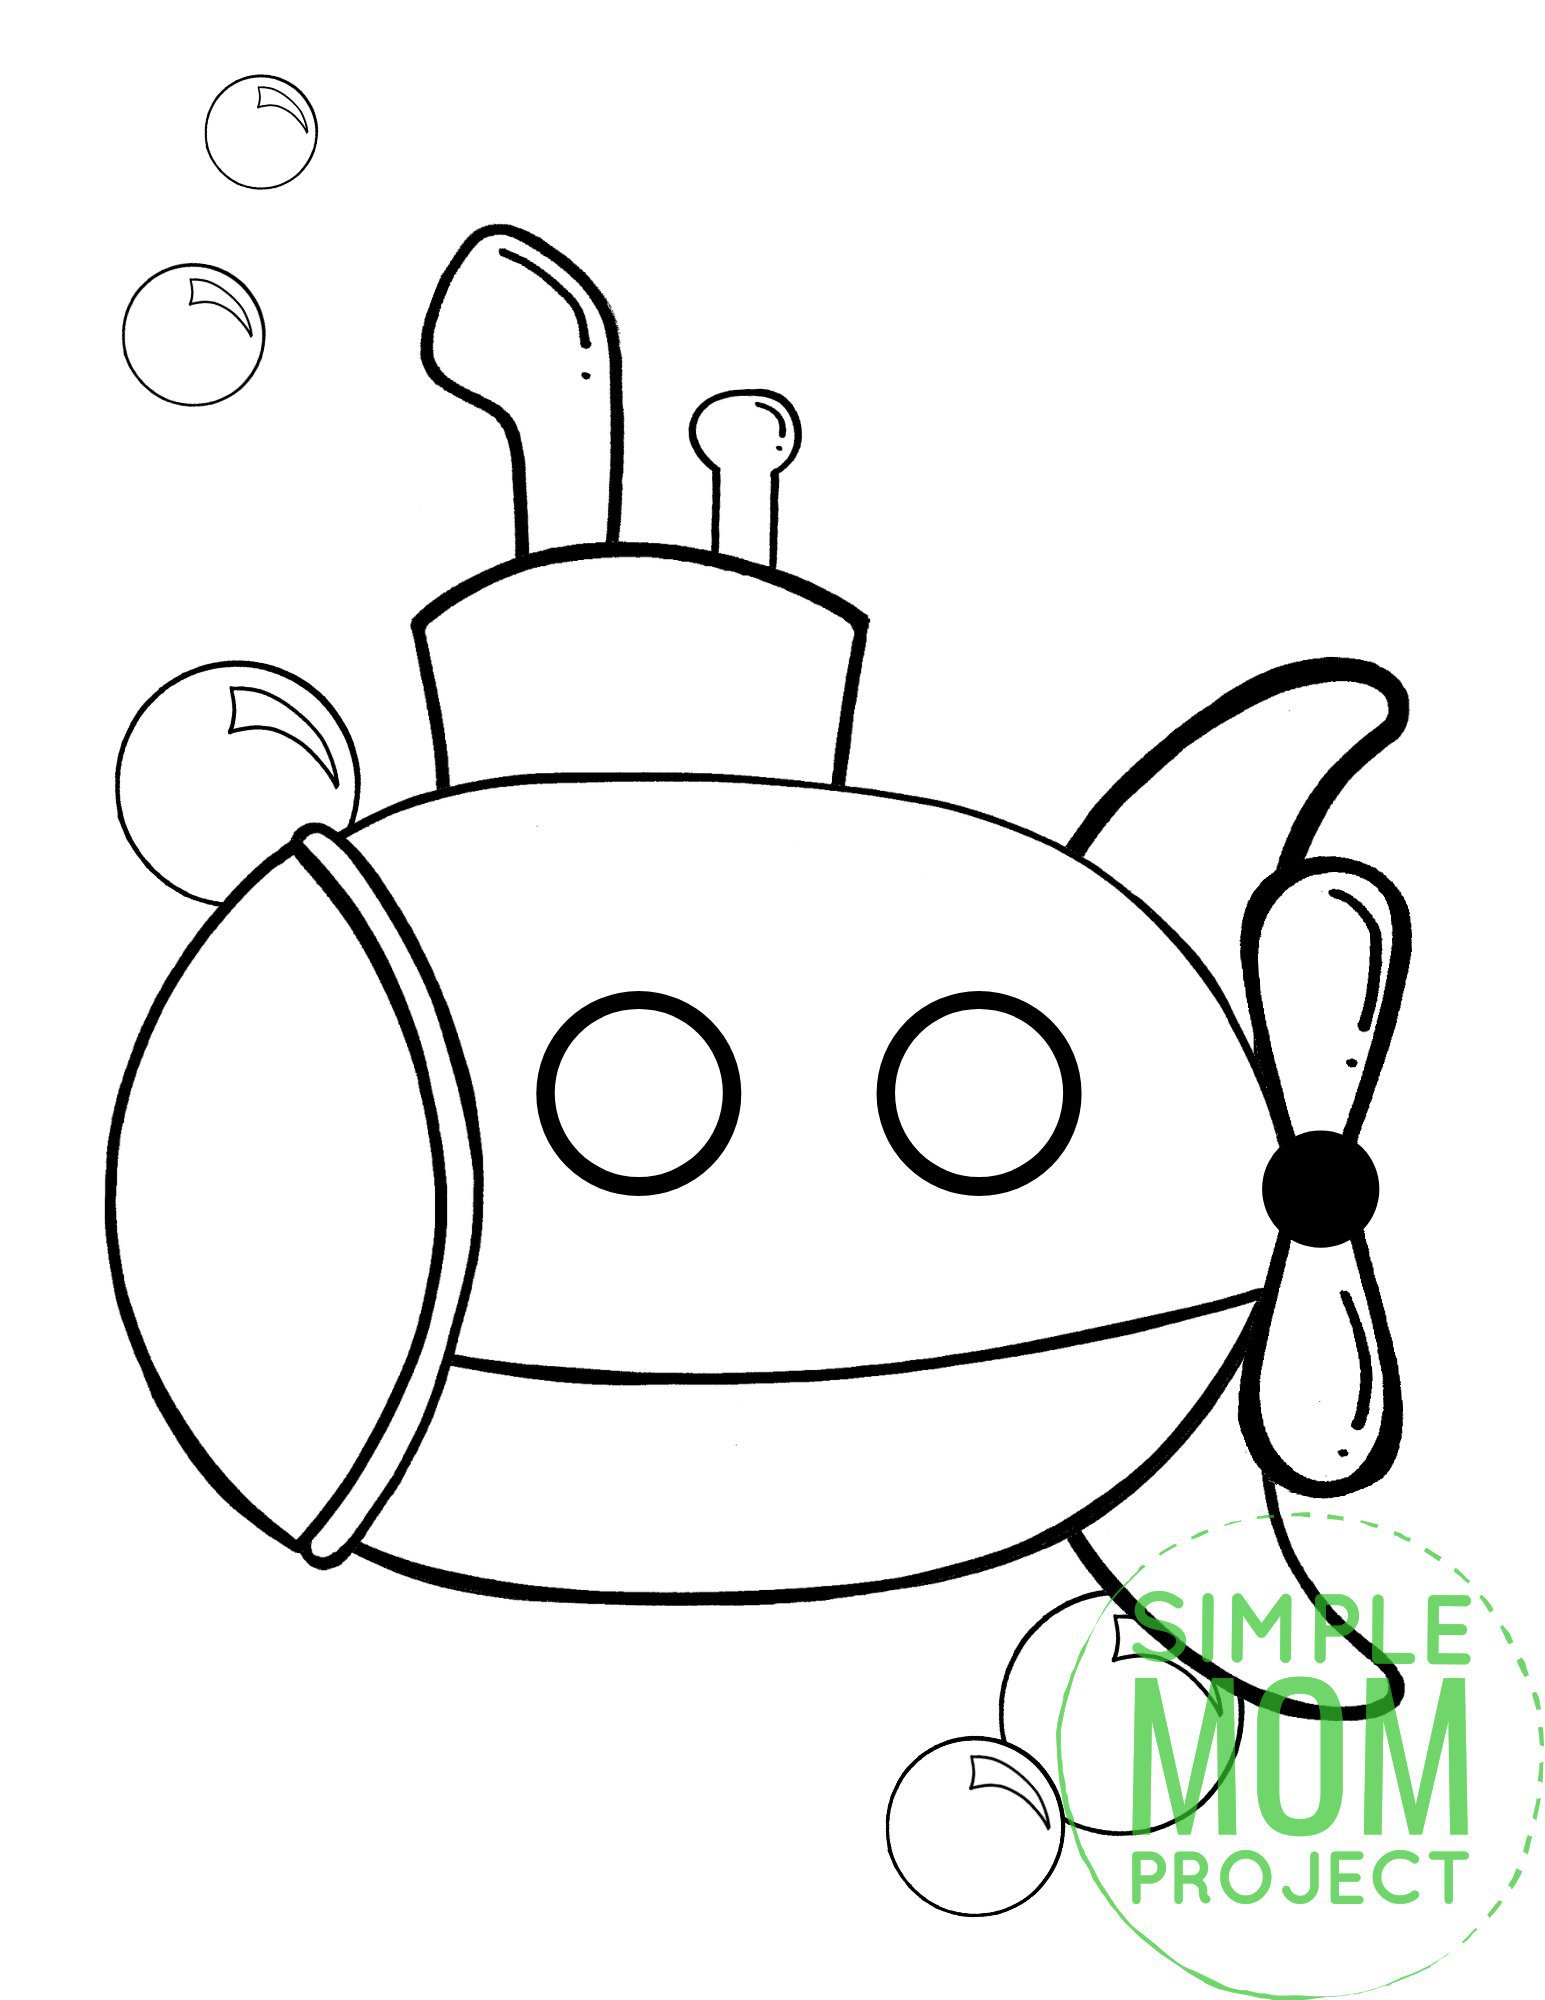 Printable Submarine Ocean Animal Coloring Page for Kids